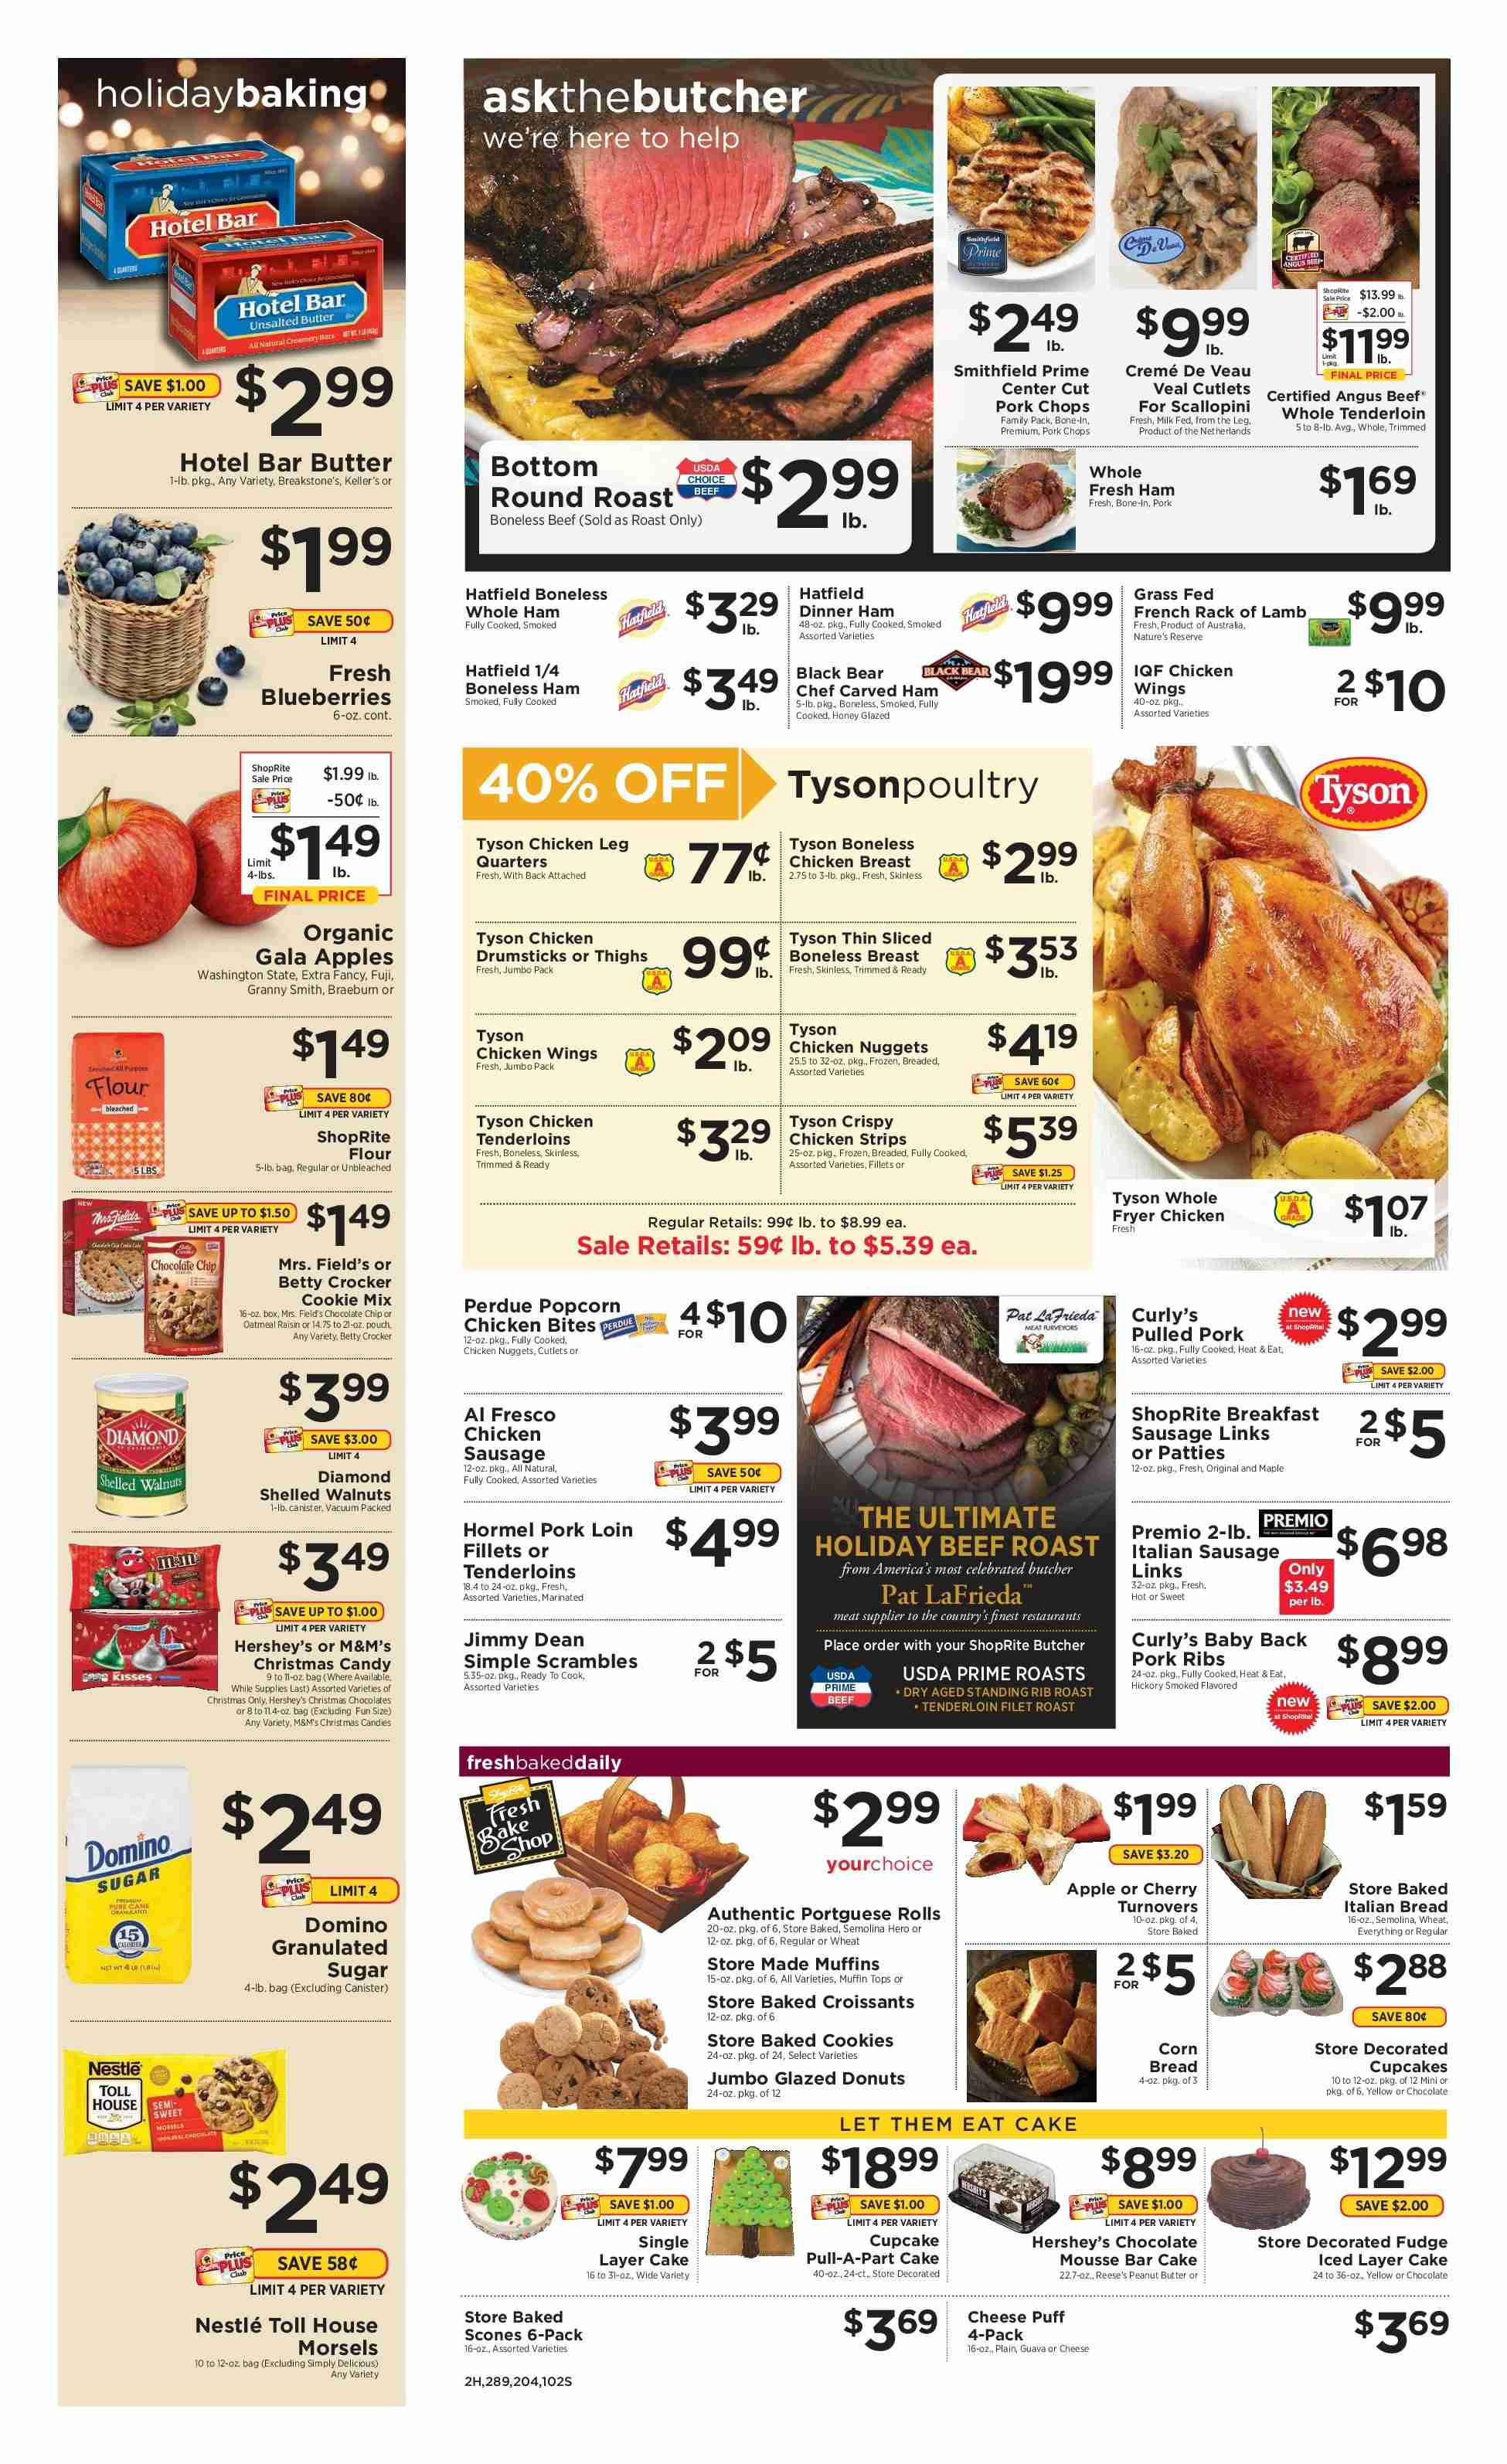 ShopRite Flyer - 12.09.2018 - 12.15.2018 - Sales products - apple, beef meat, beef roast, box, butter, crème, frozen, guava, milk, muffins, nestlé, sausage, semolina, vacuum, veal cutlets, veal meat, walnuts, honey, pork chops, pork meat, chicken, peanuts, oatmeal, chocolate, tenderloin, cheese, cake, candy, nuggets, donuts. Page 2.